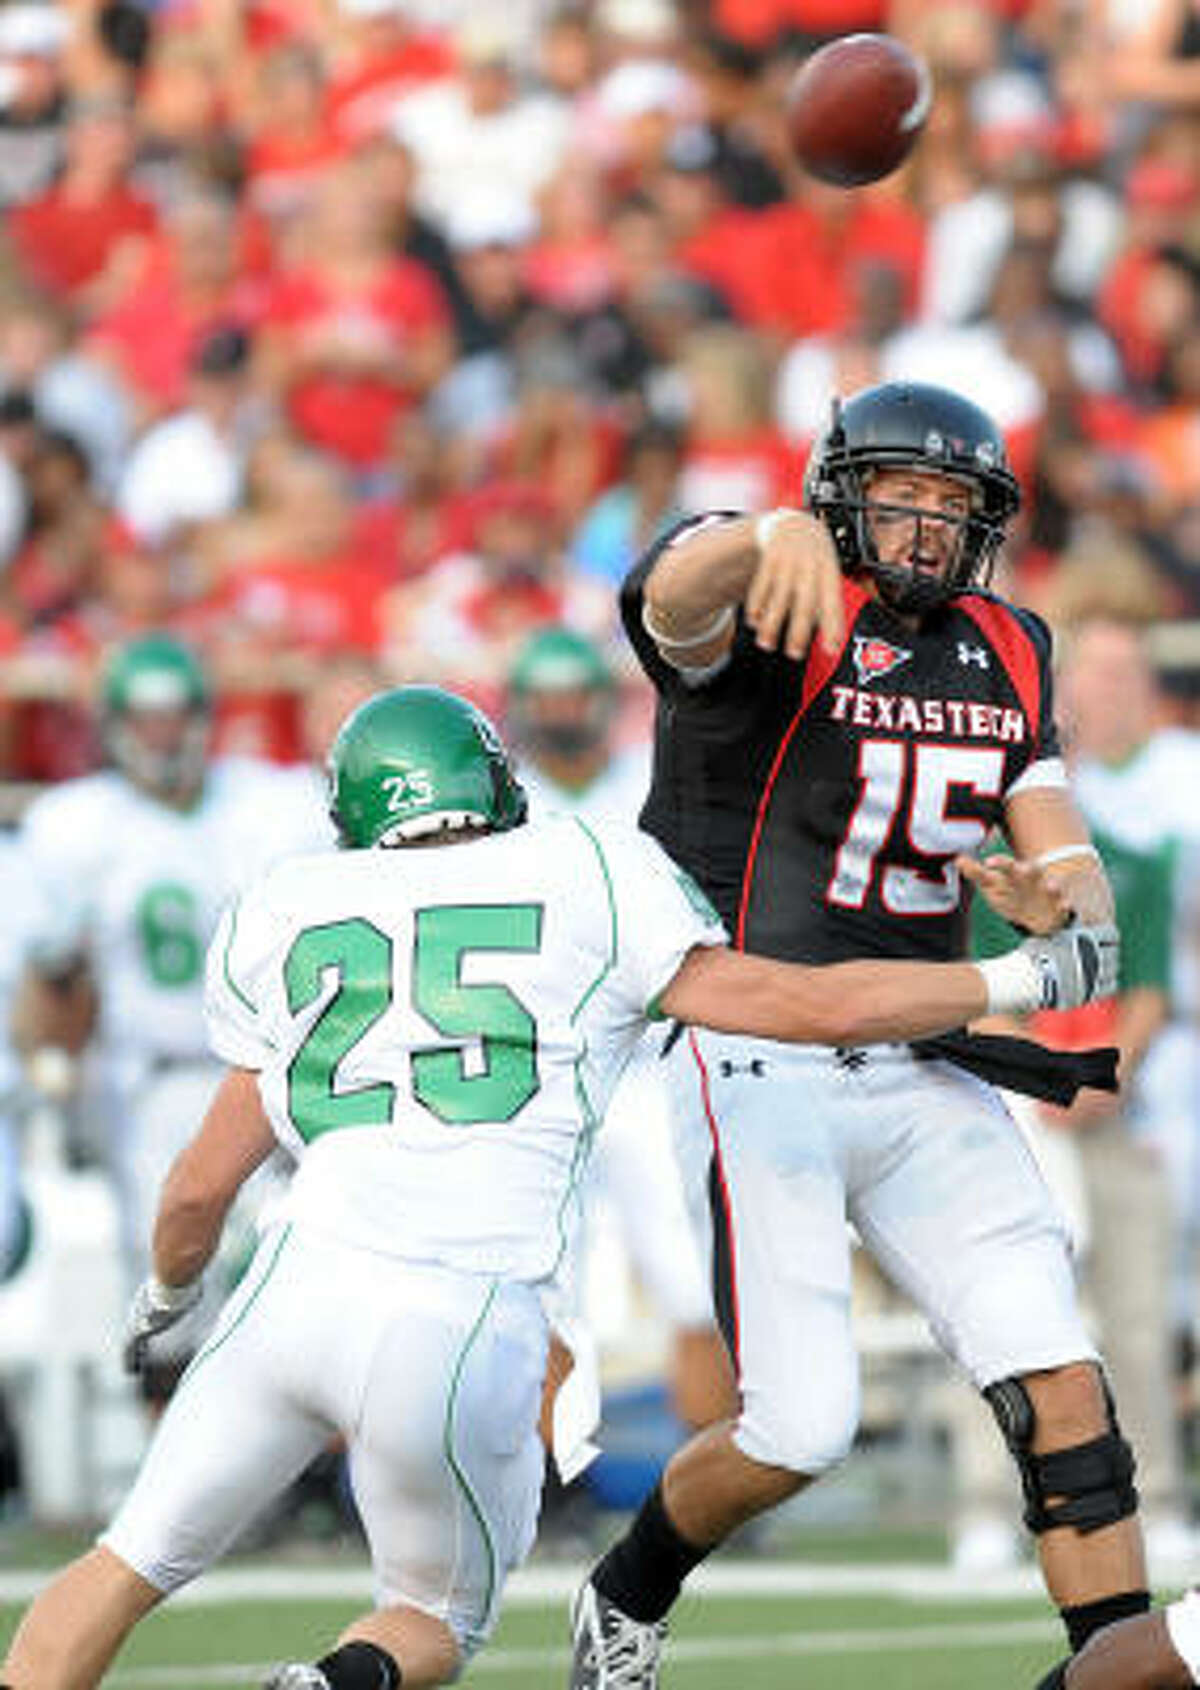 Texas Tech's Taylor Potts, right, throws a pass under pressure from North Dakota's Damon Andrews.